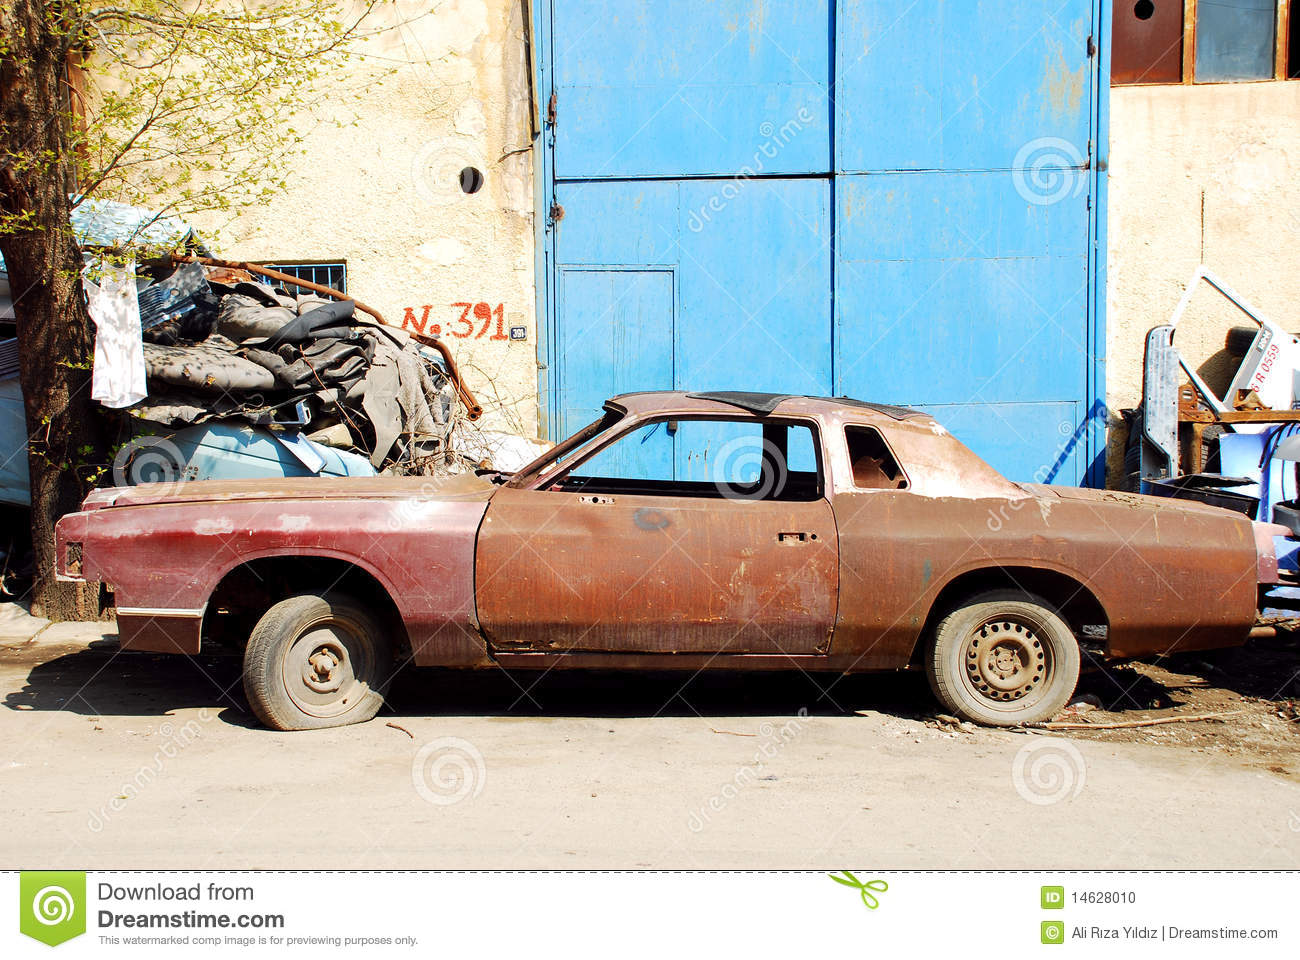 Old Rusty Car stock photo. Image of damage, classic, broken - 14628010